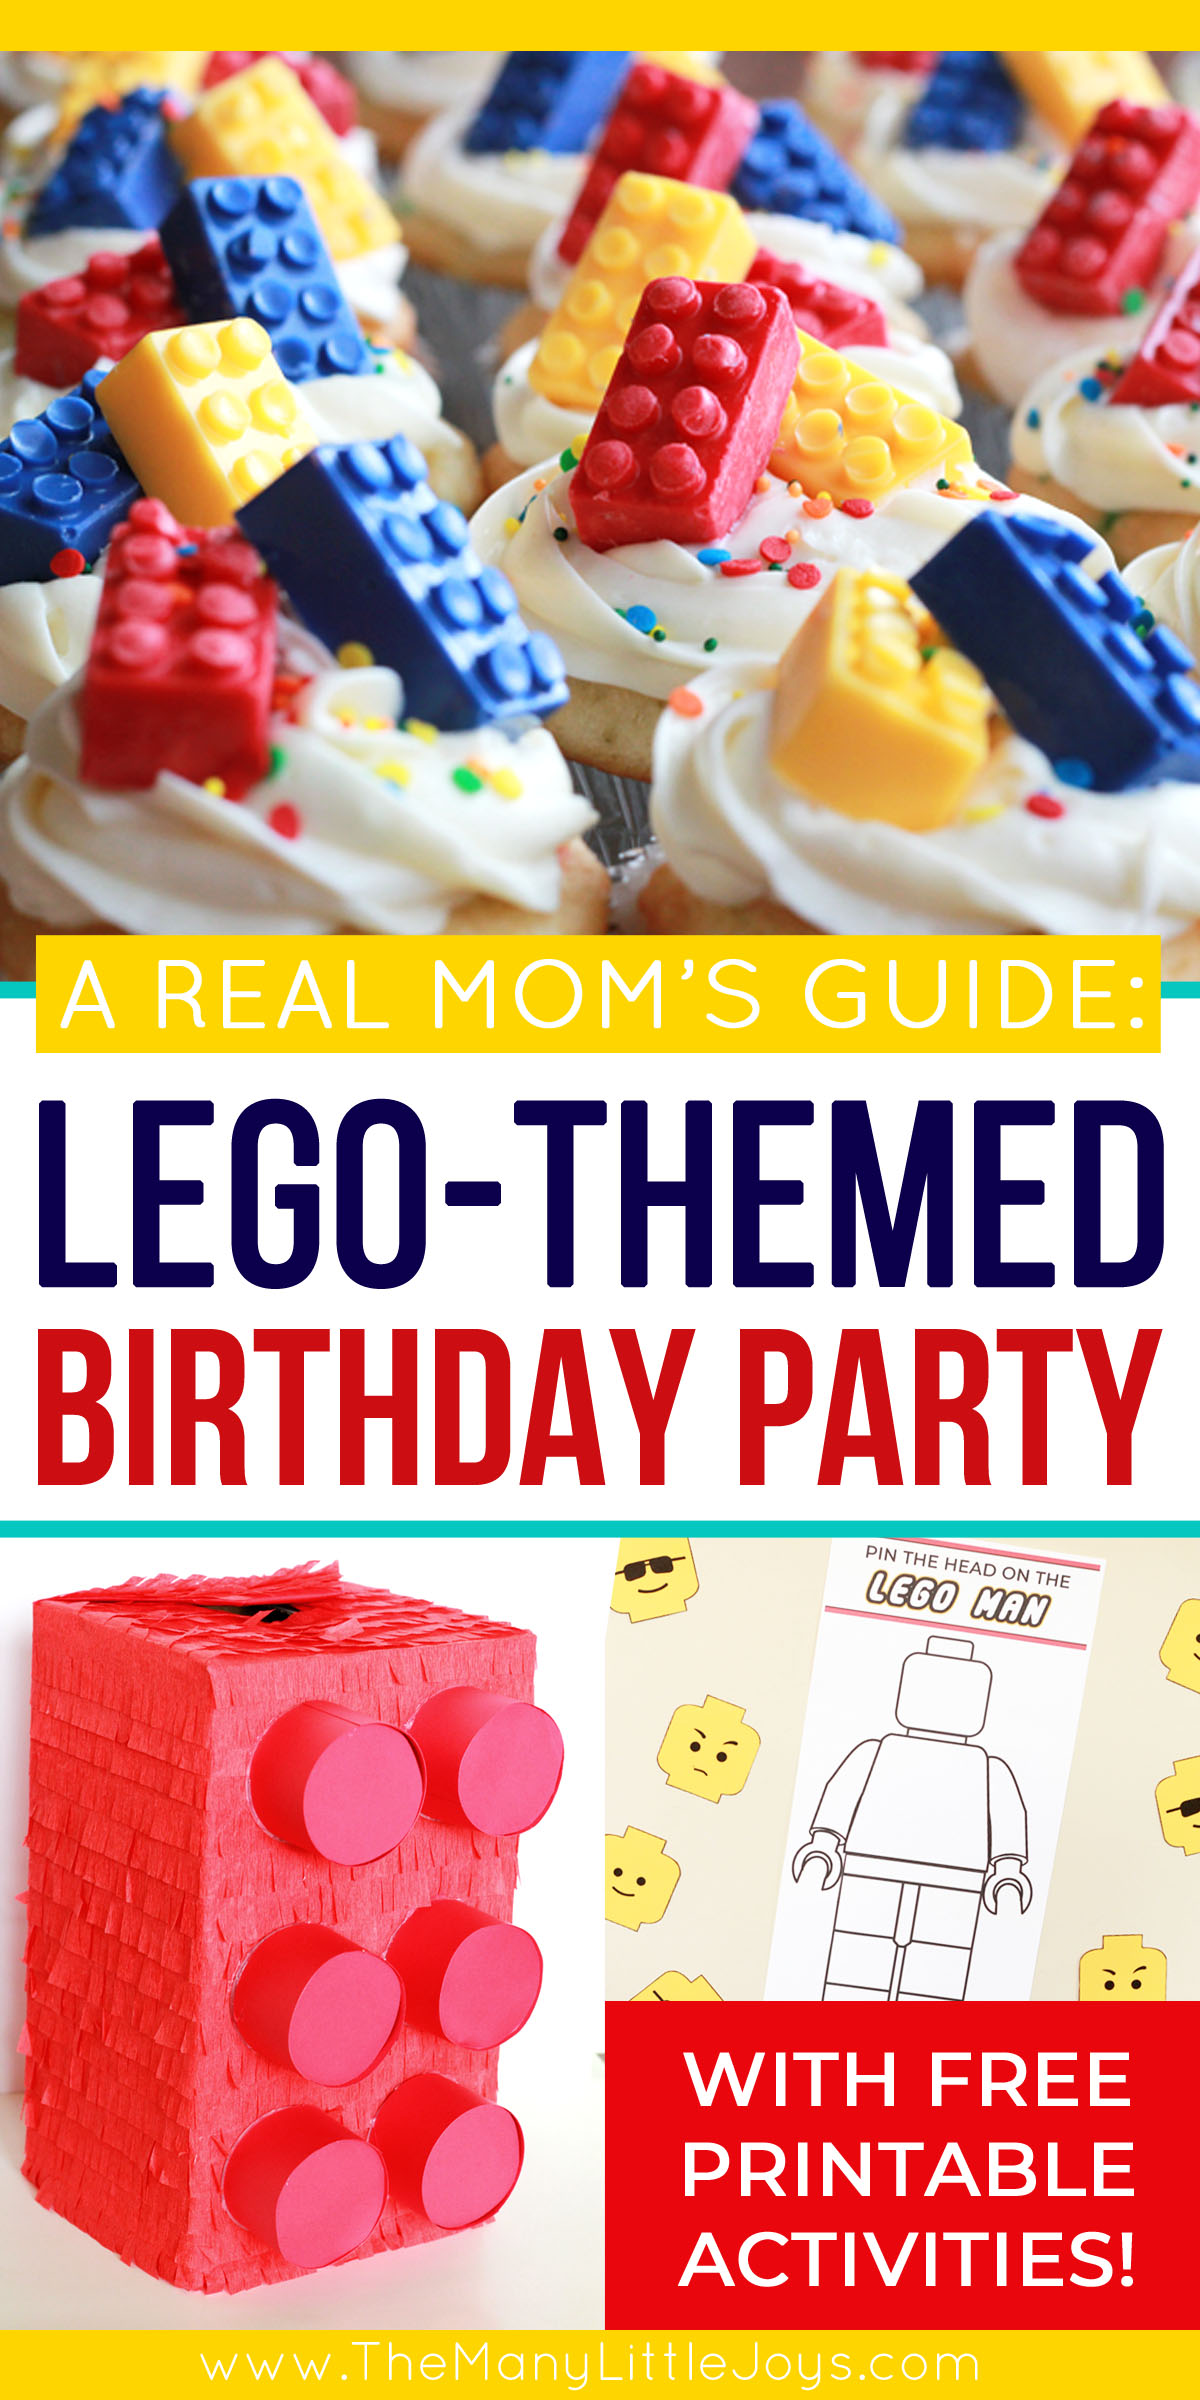 photo regarding Lego Party Printable named How in the direction of toss a Lego birthday bash: a genuine mothers direct - The